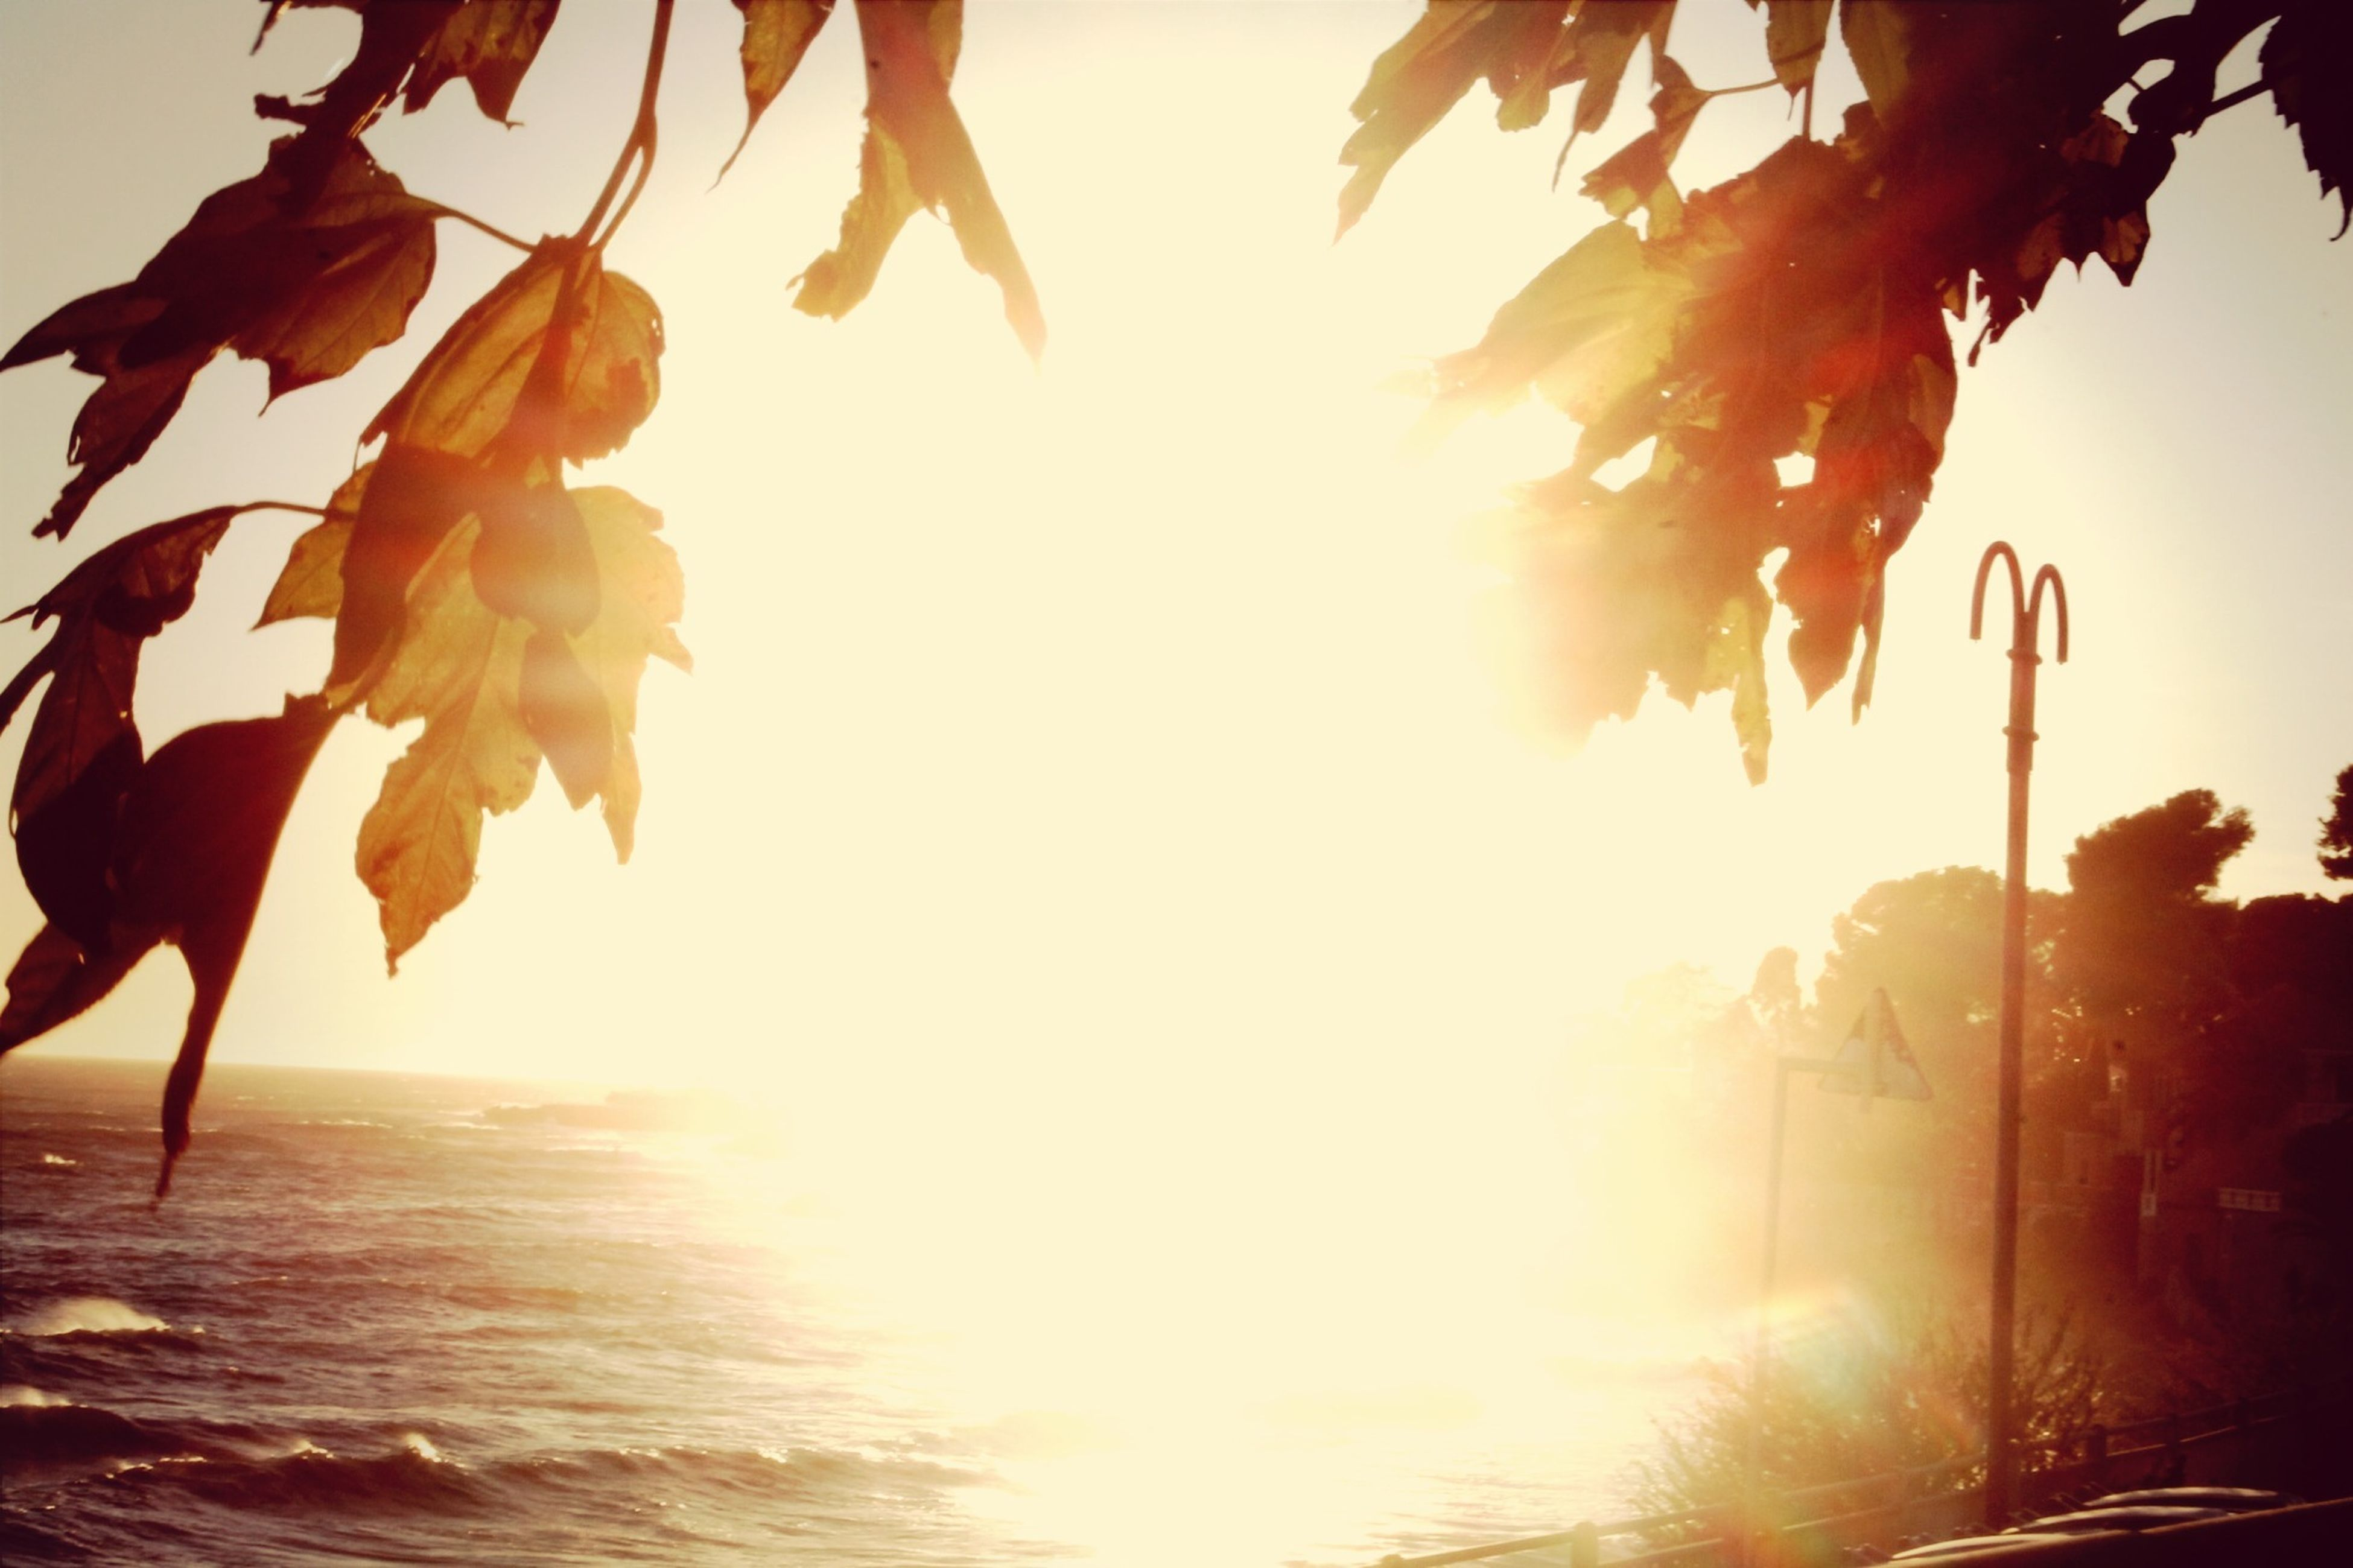 sun, sunlight, sunset, sunbeam, tree, beauty in nature, clear sky, leaf, nature, tranquility, lens flare, growth, sea, scenics, tranquil scene, orange color, water, branch, bright, horizon over water